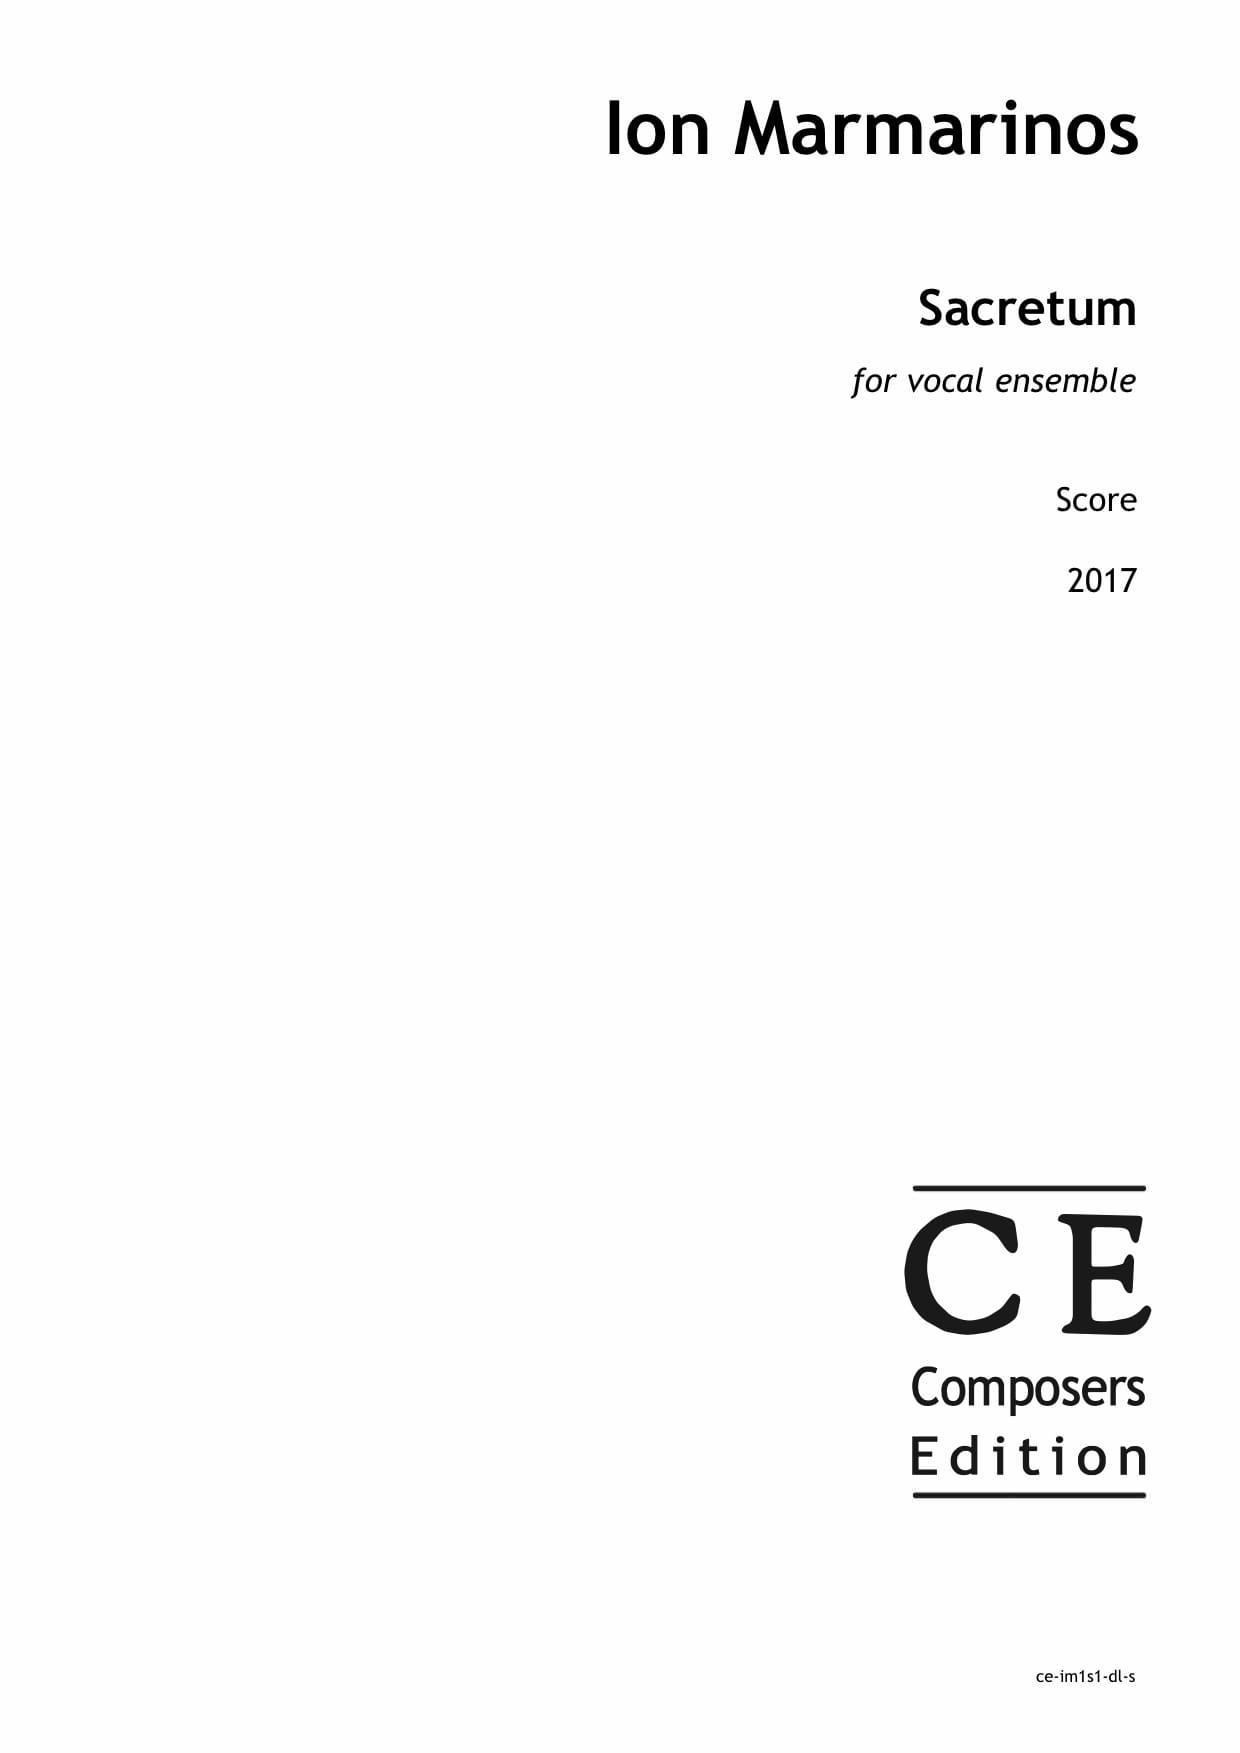 Ion Marmarinos: Sacretum for vocal ensemble